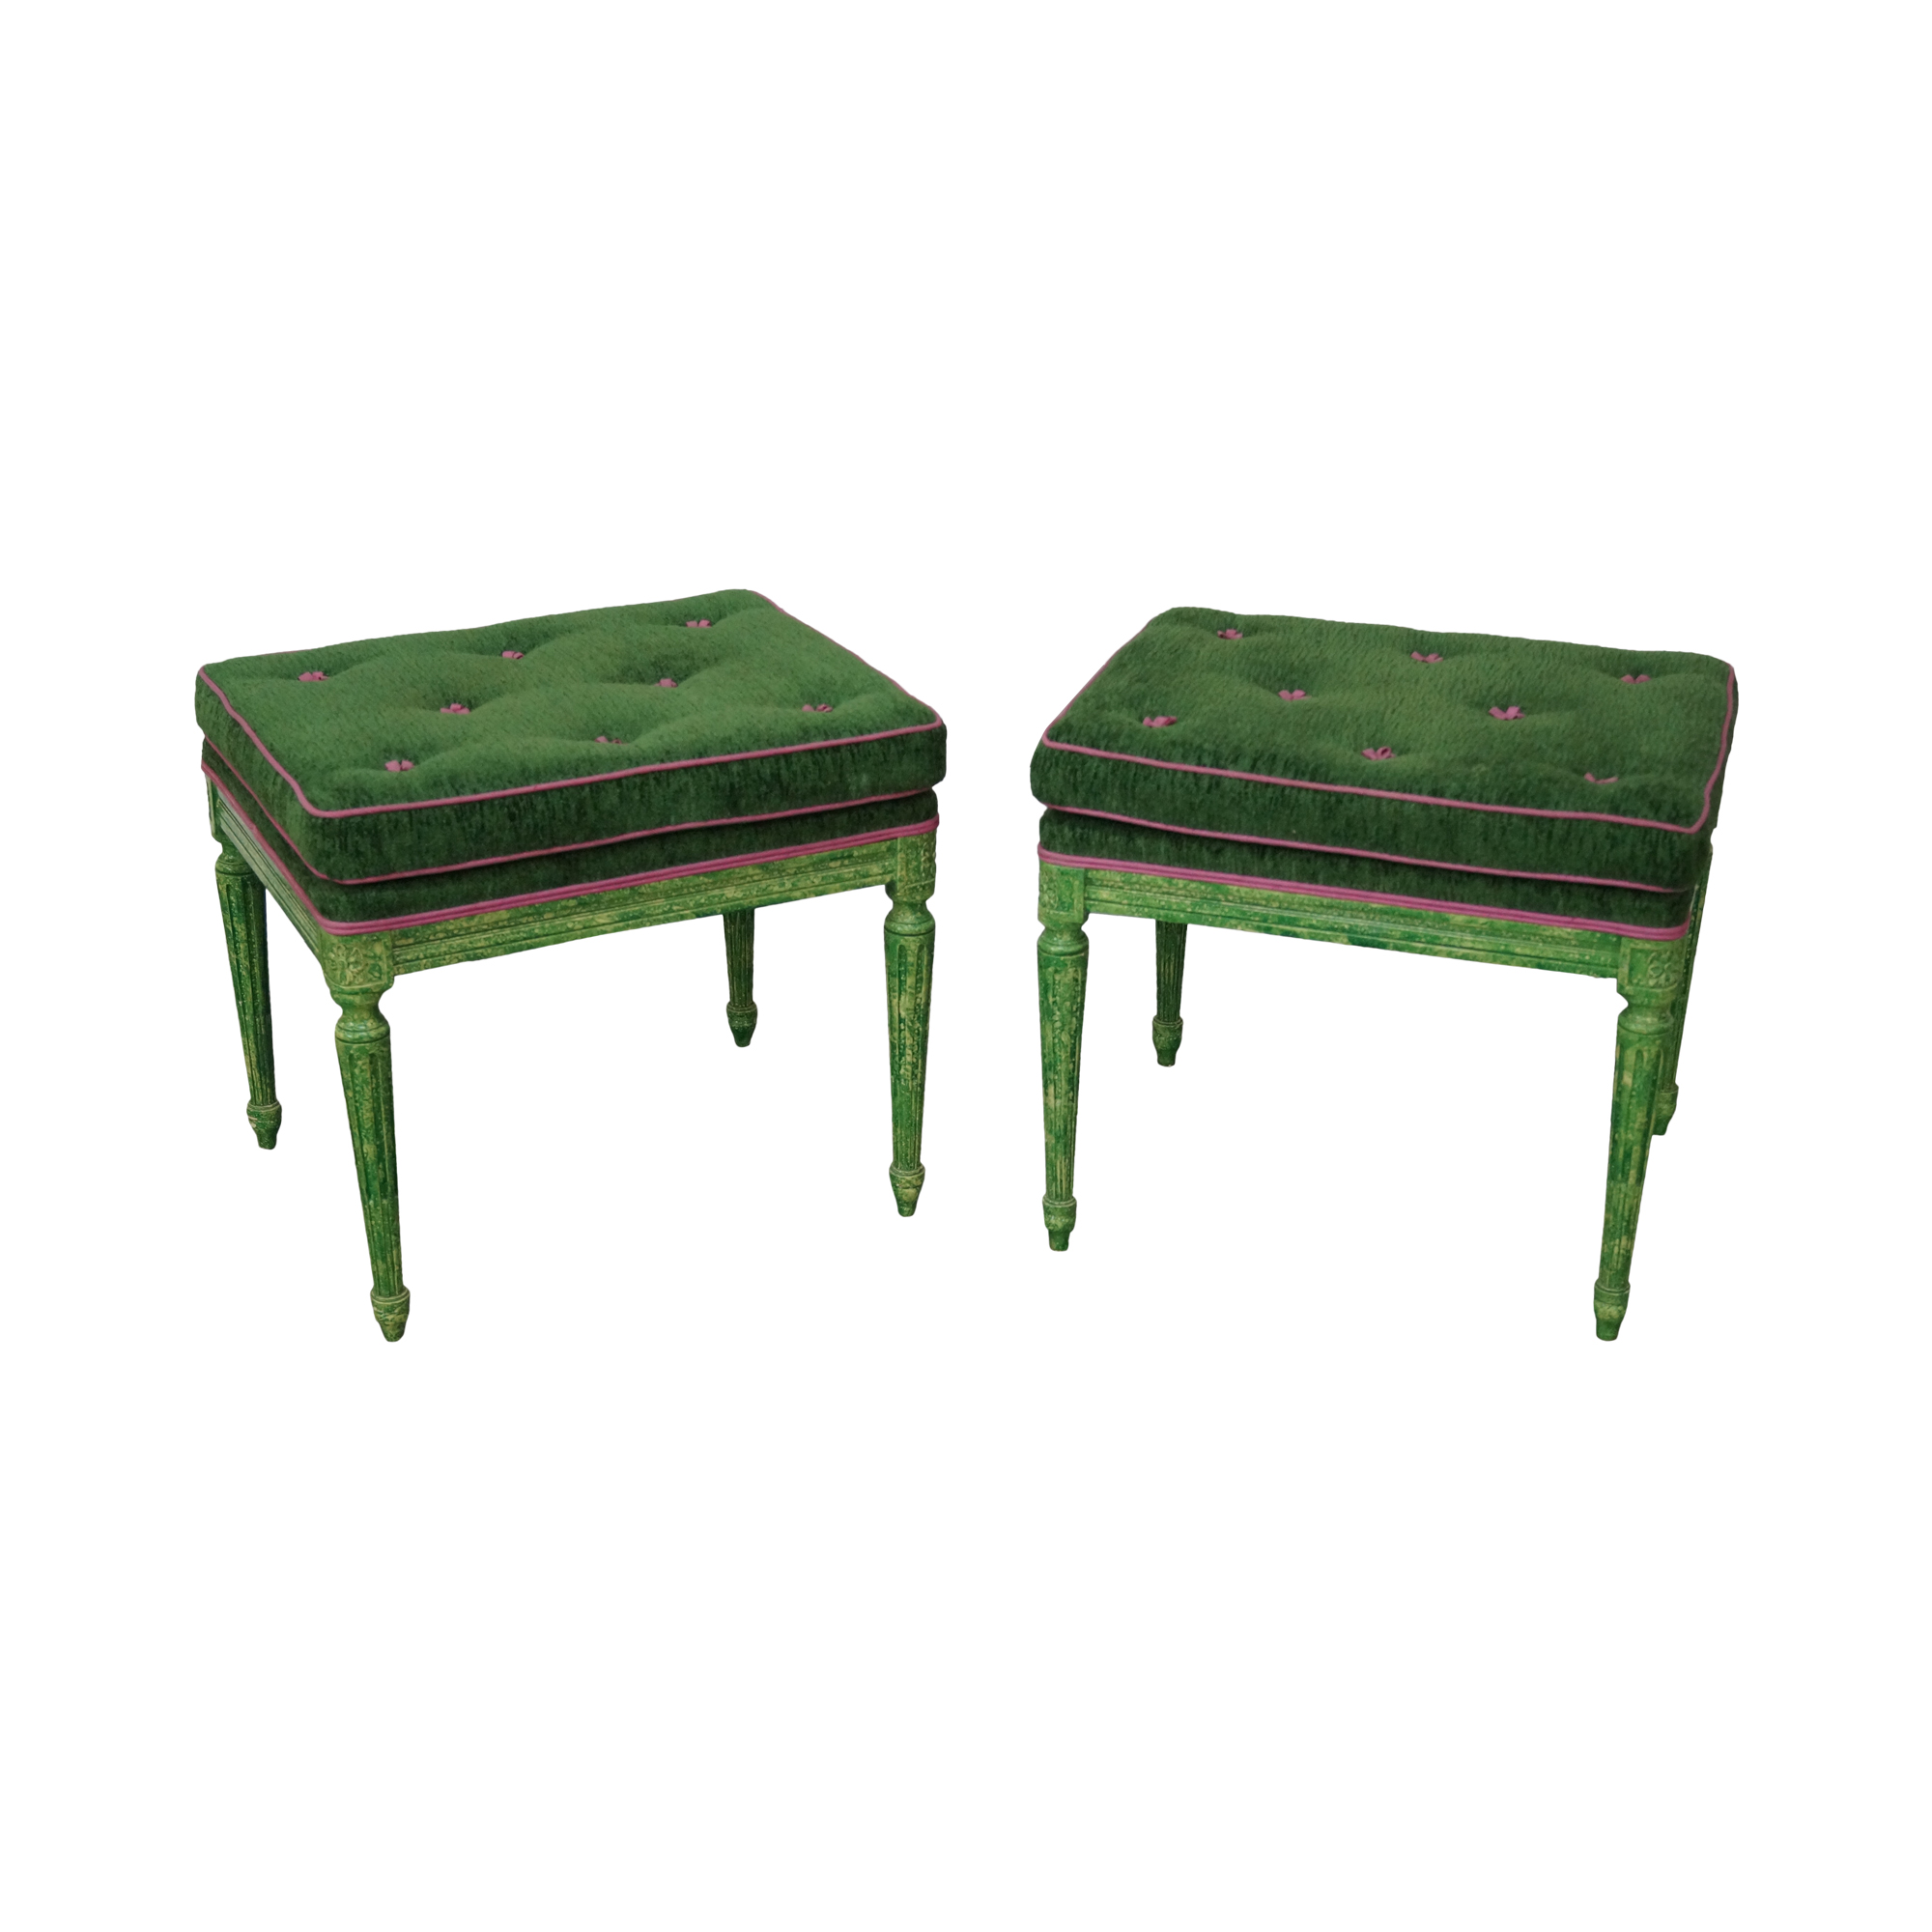 Vintage Louis Xvi Green Painted Benches A Pair Chairish